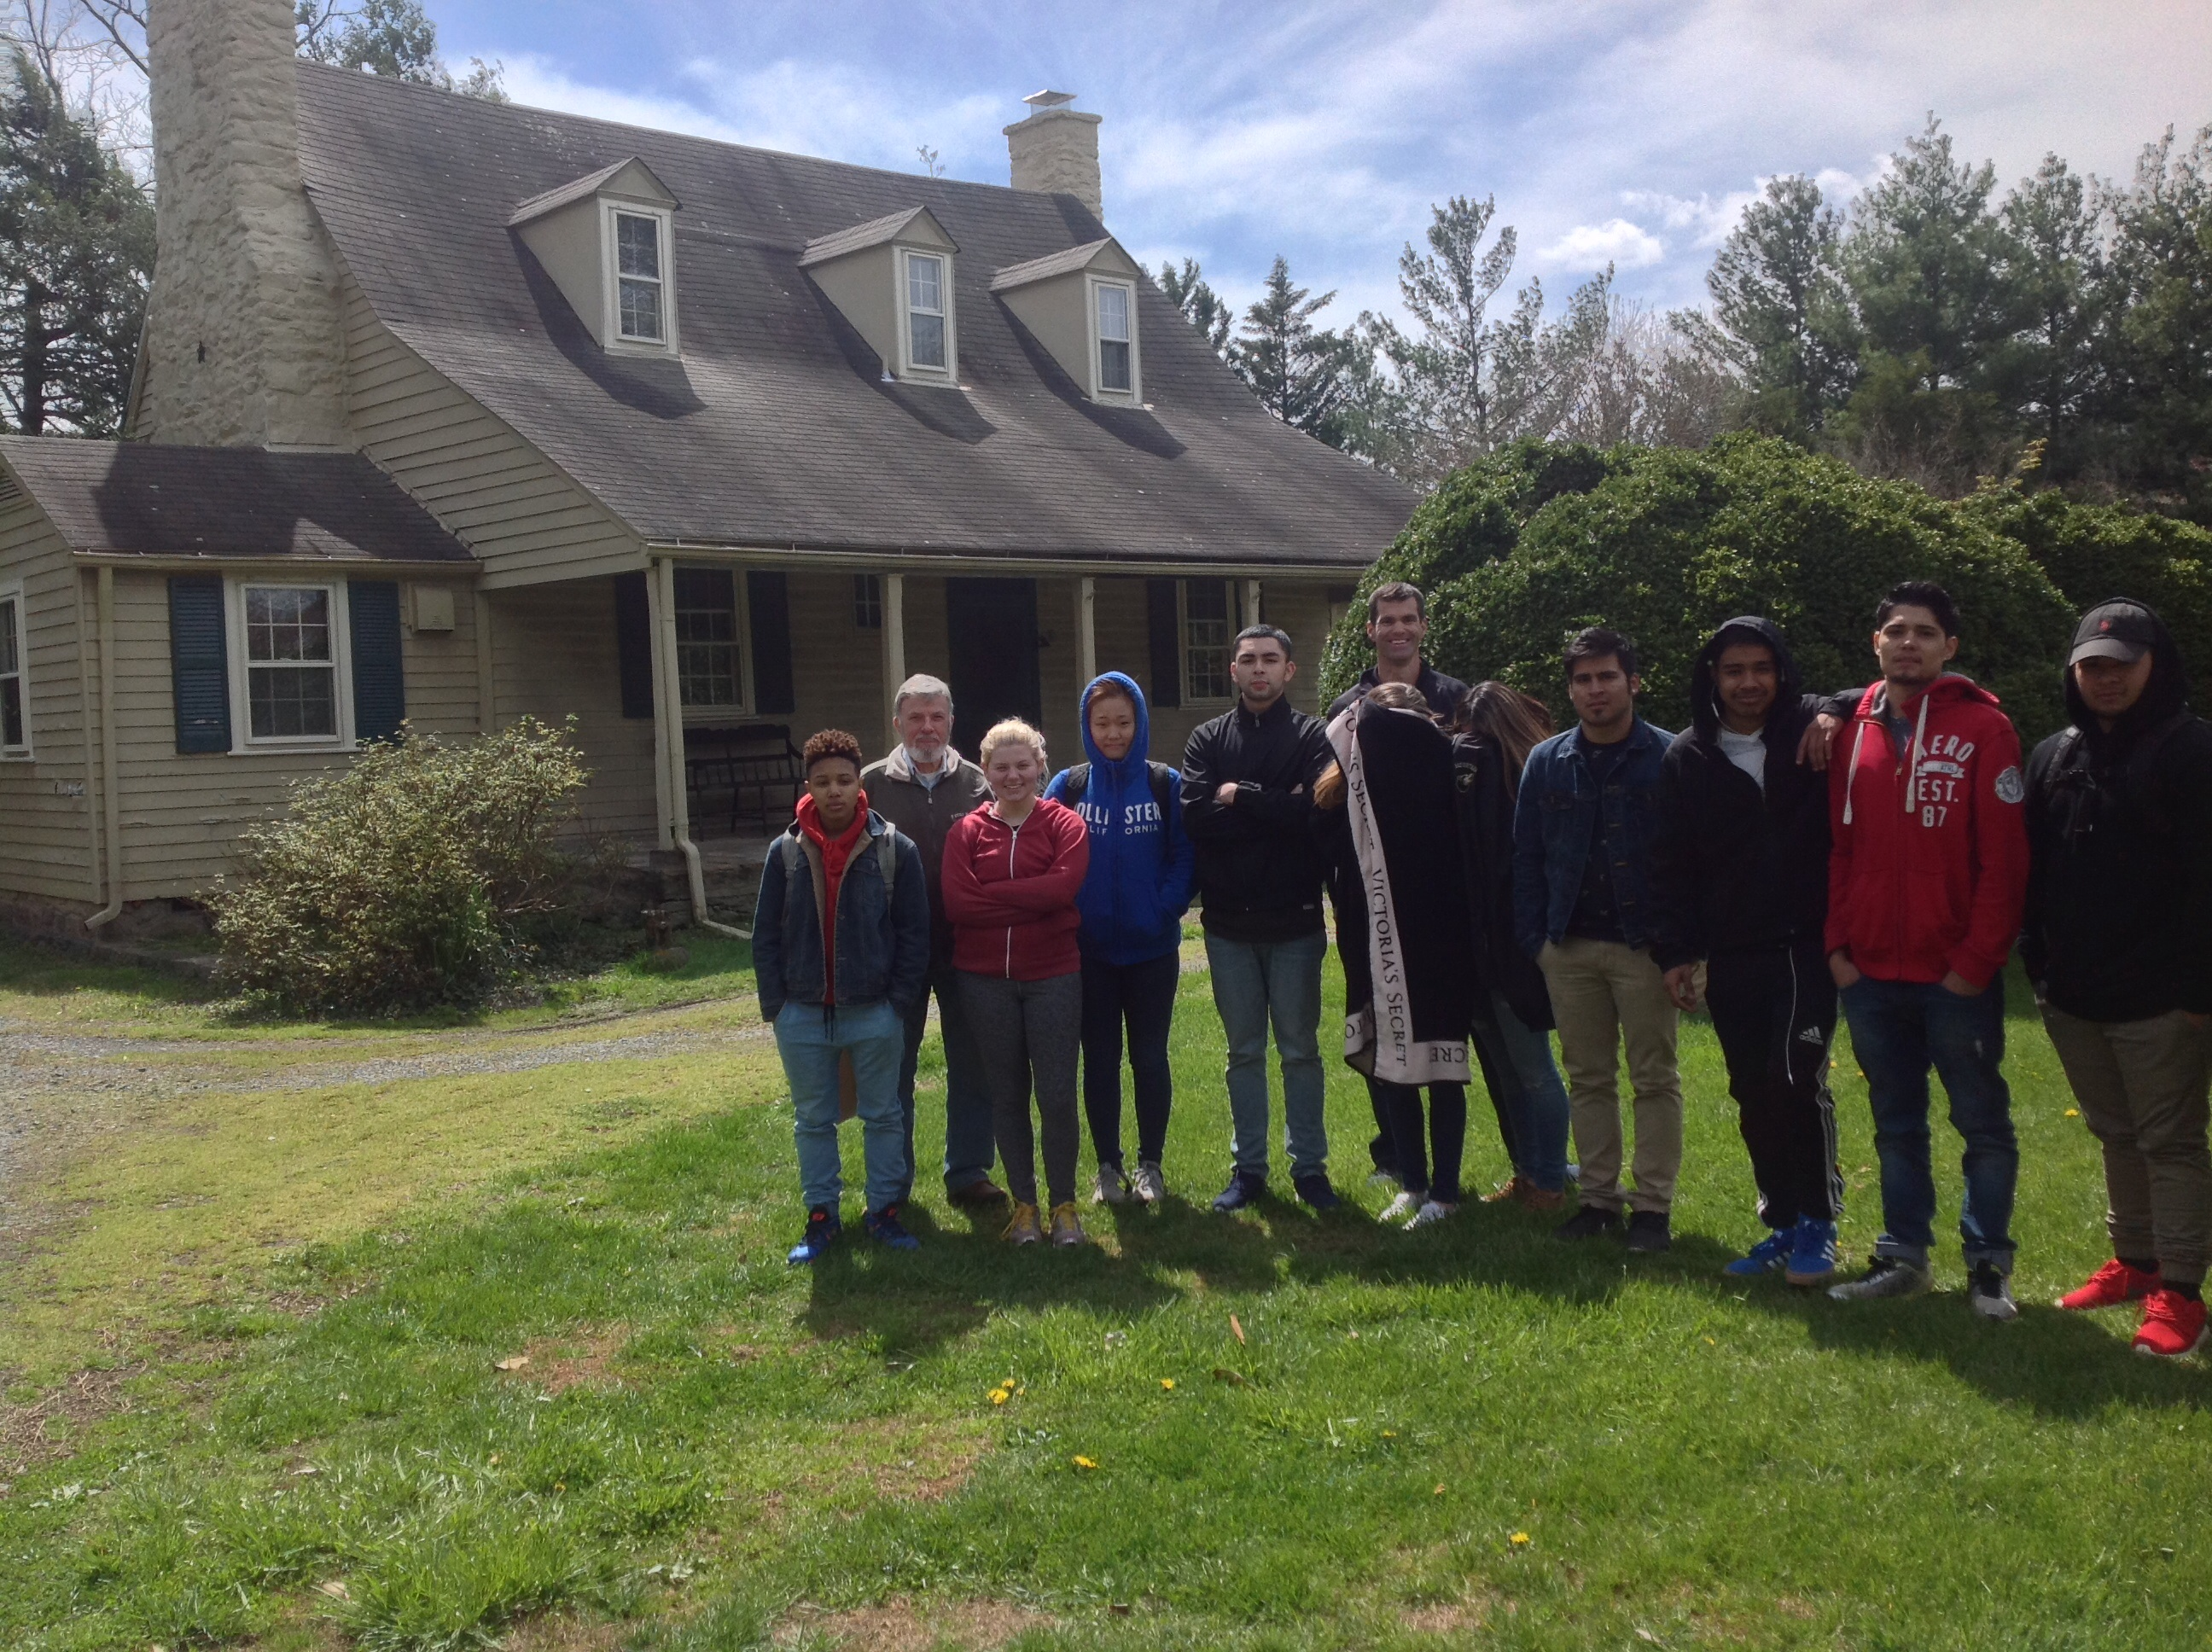 A group of students stands with the Professor in front of his historic home in the Mt. Gilead section of the historic district of Centreville, VA